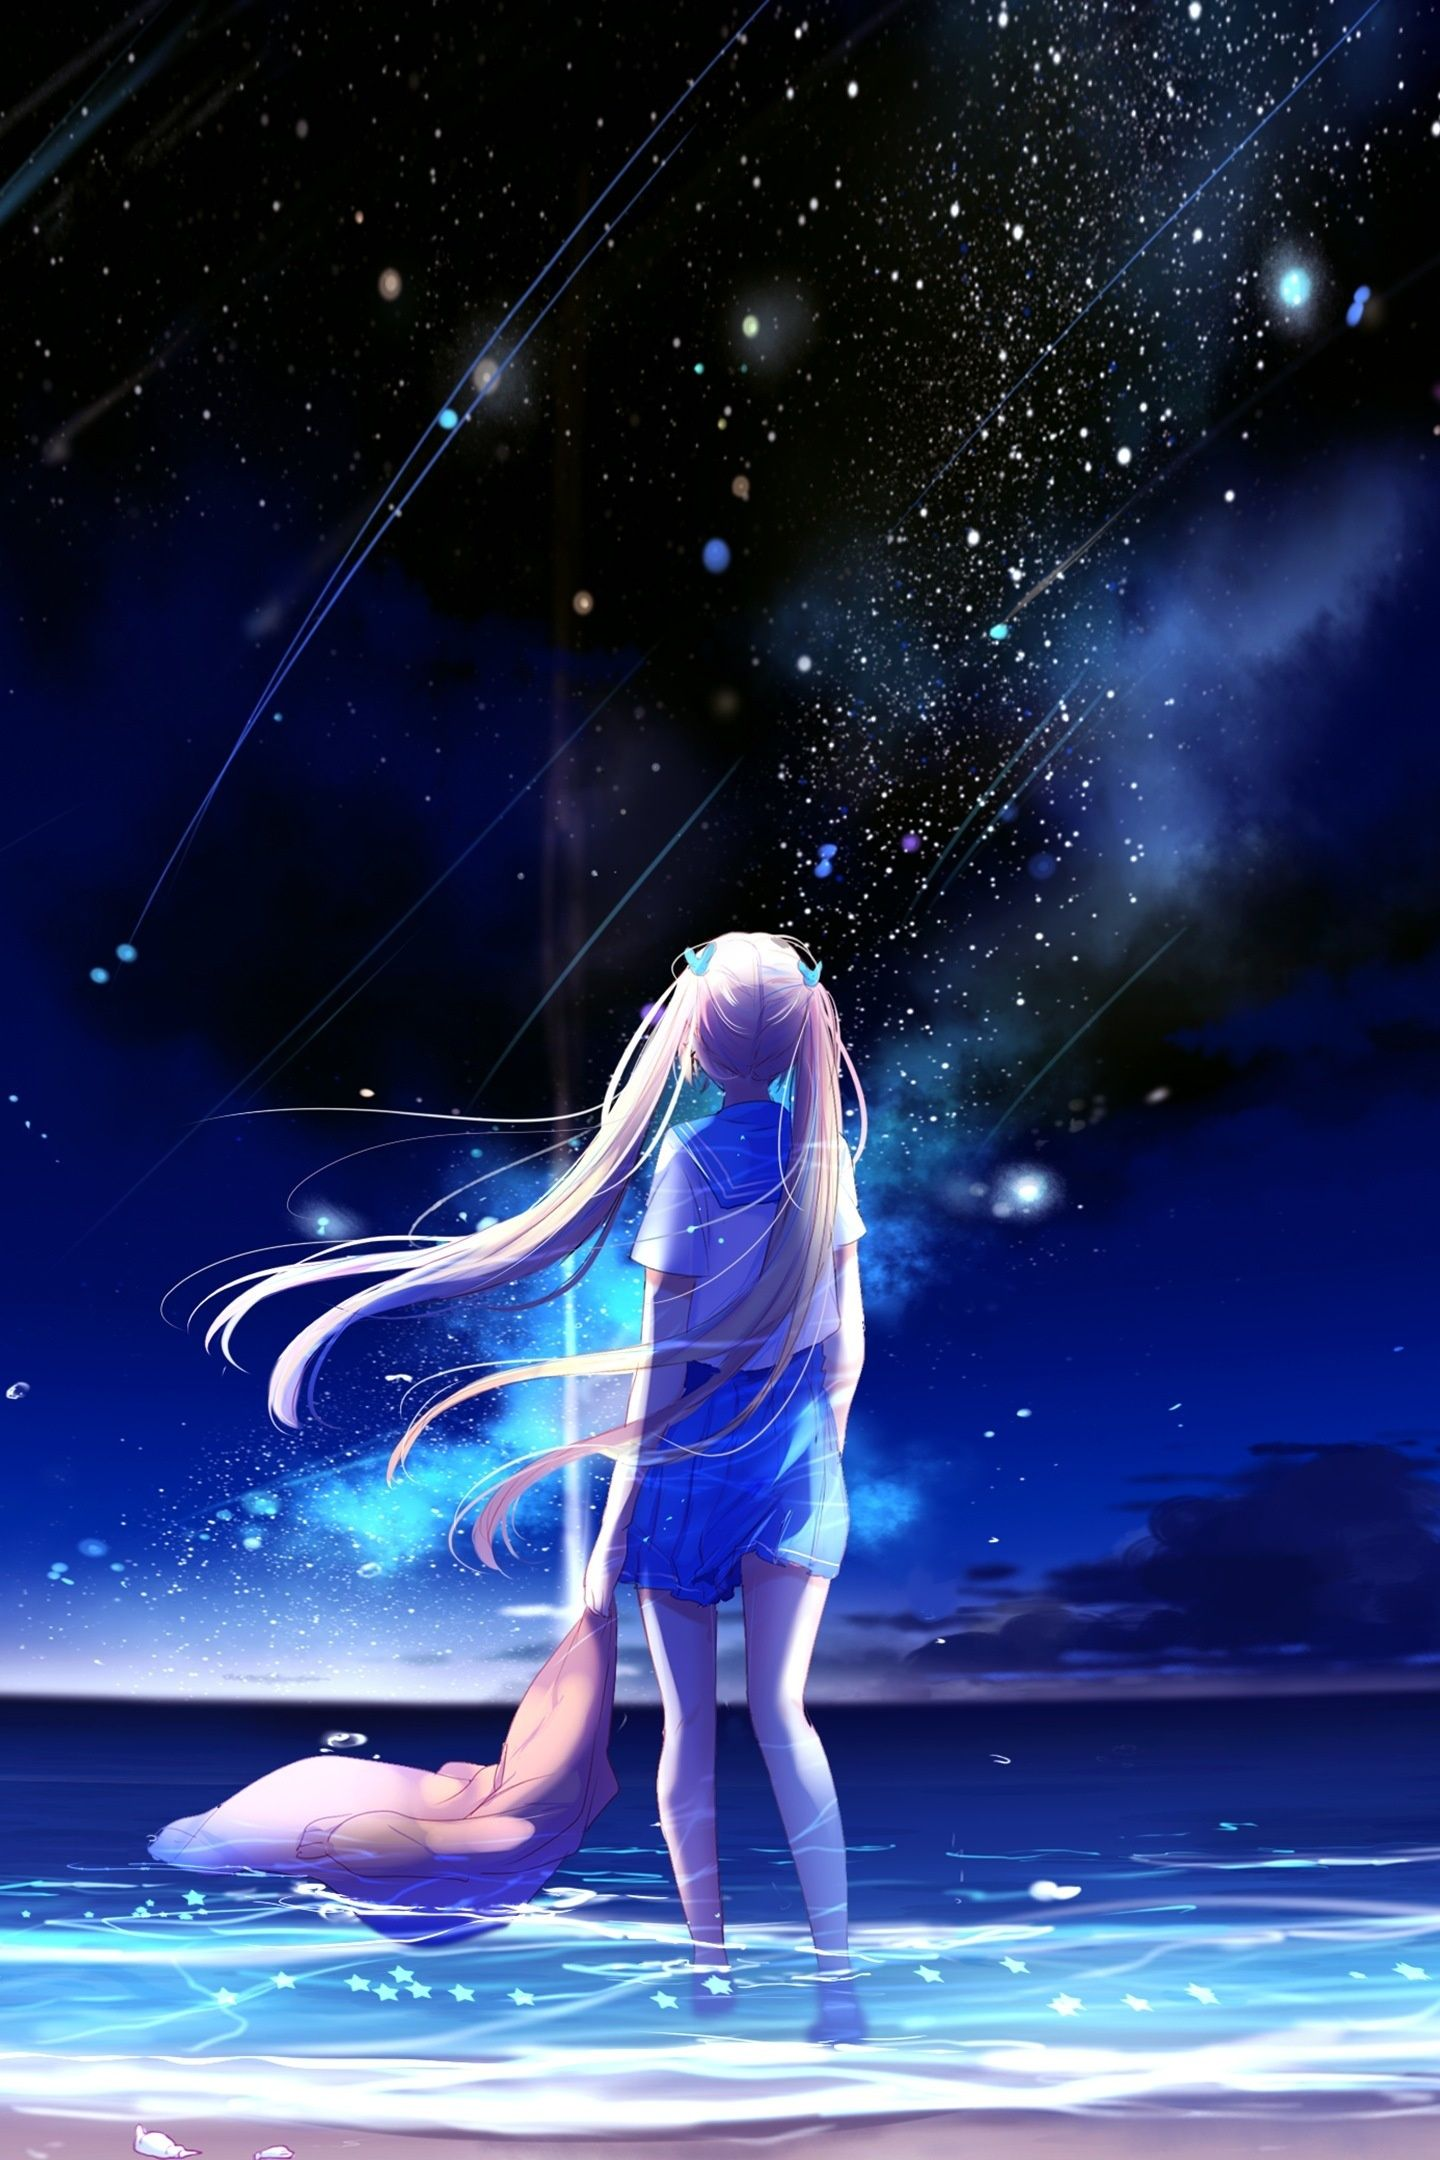 Anime Galaxy Girl Wallpapers Top Free Anime Galaxy Girl Backgrounds Wallpaperaccess